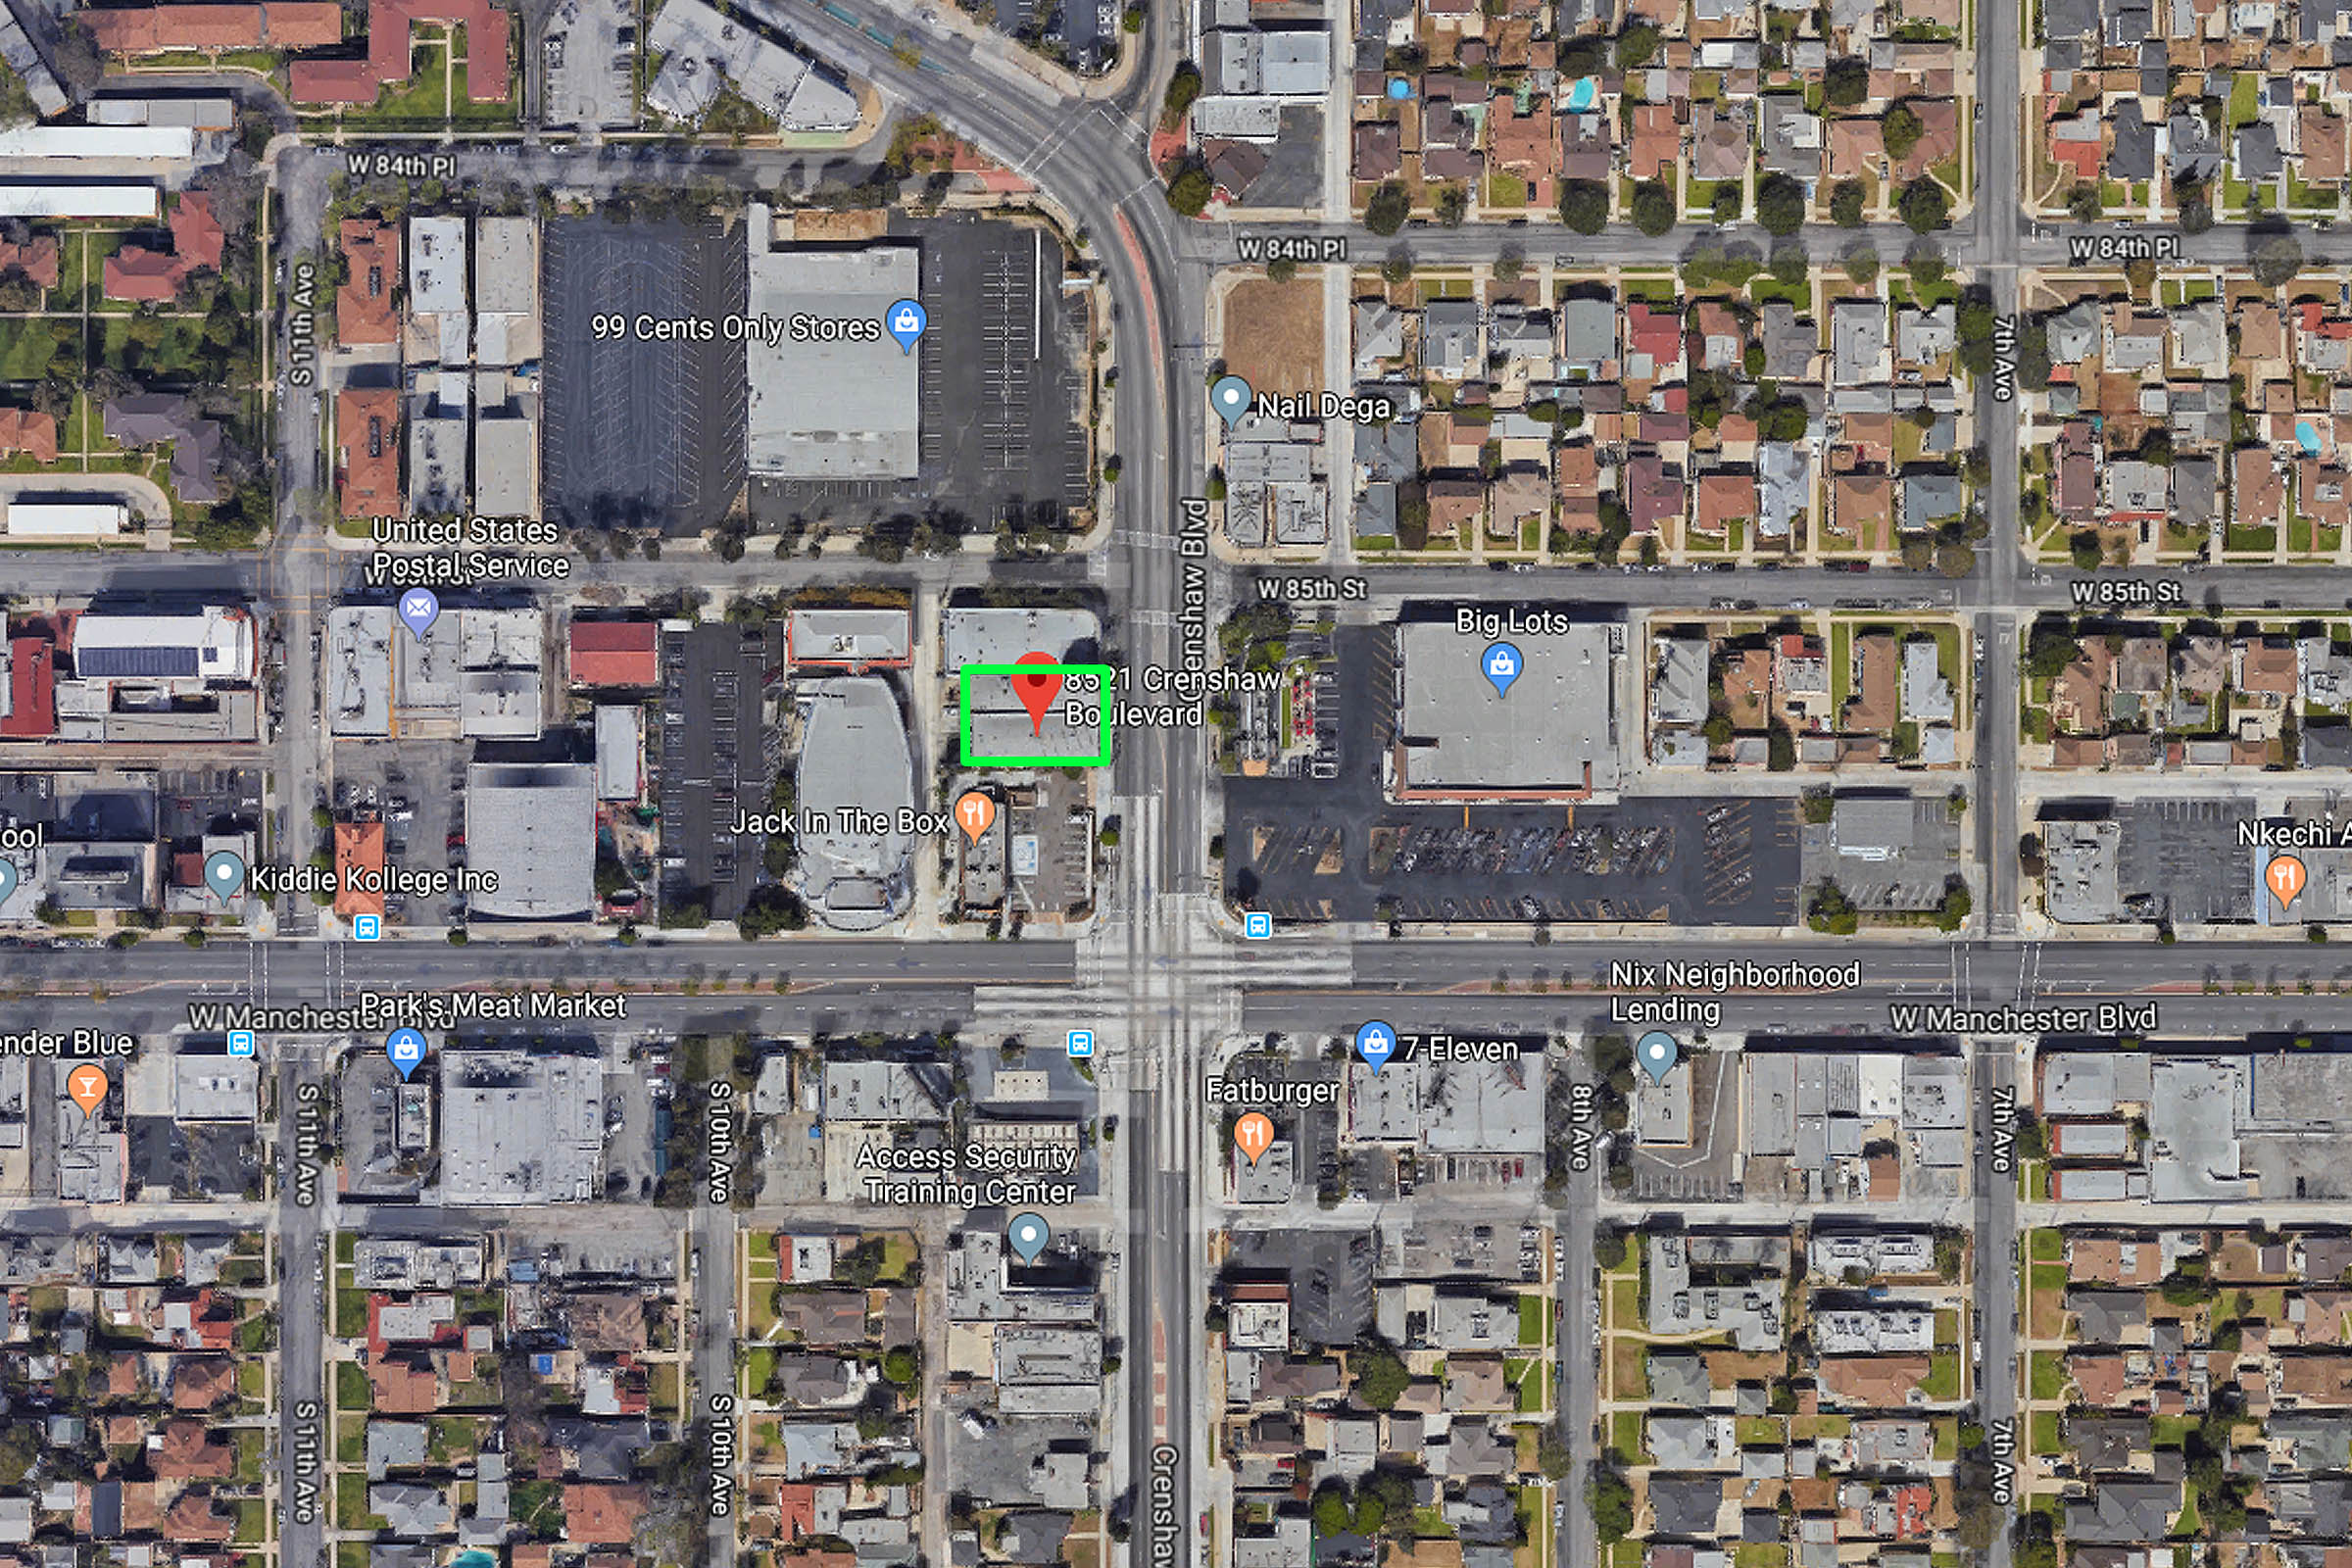 8519-8521 Crenshaw Blvd, Inglewood | For LEASE